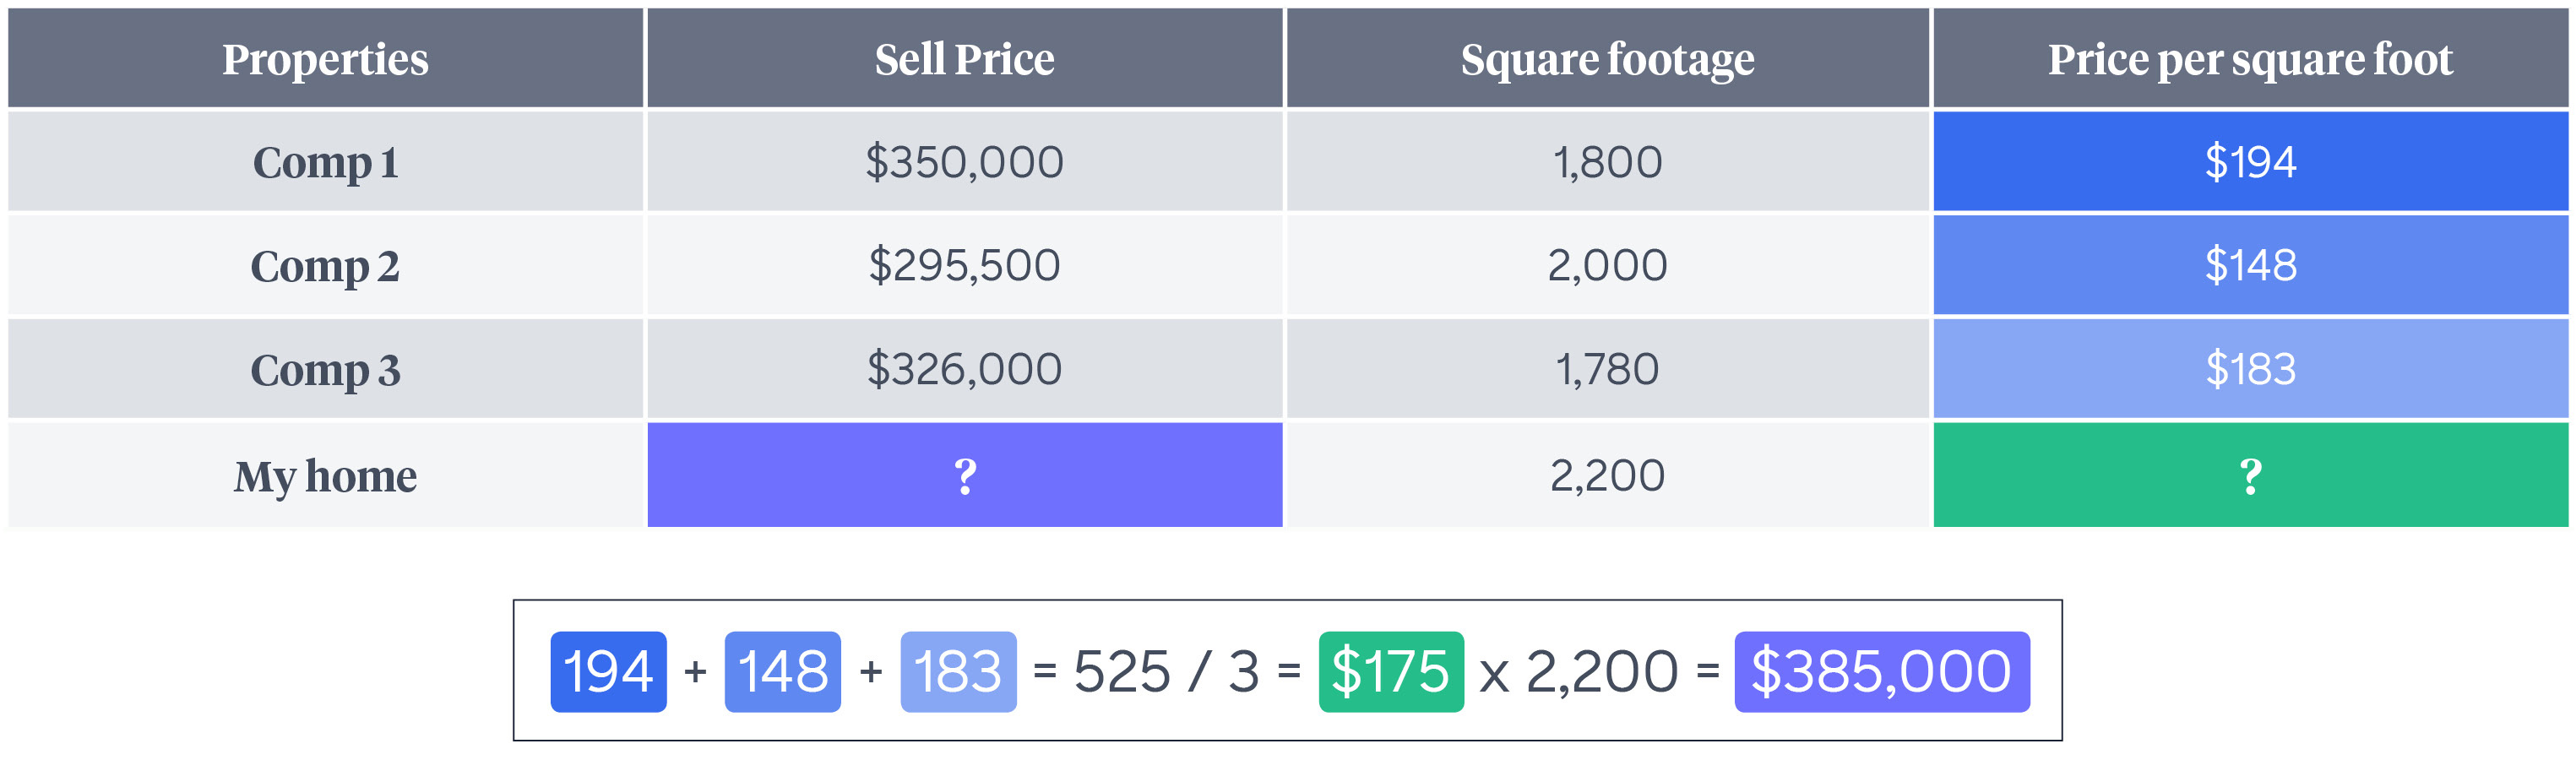 Chart explaining the cost per square feet of homes and selling price.